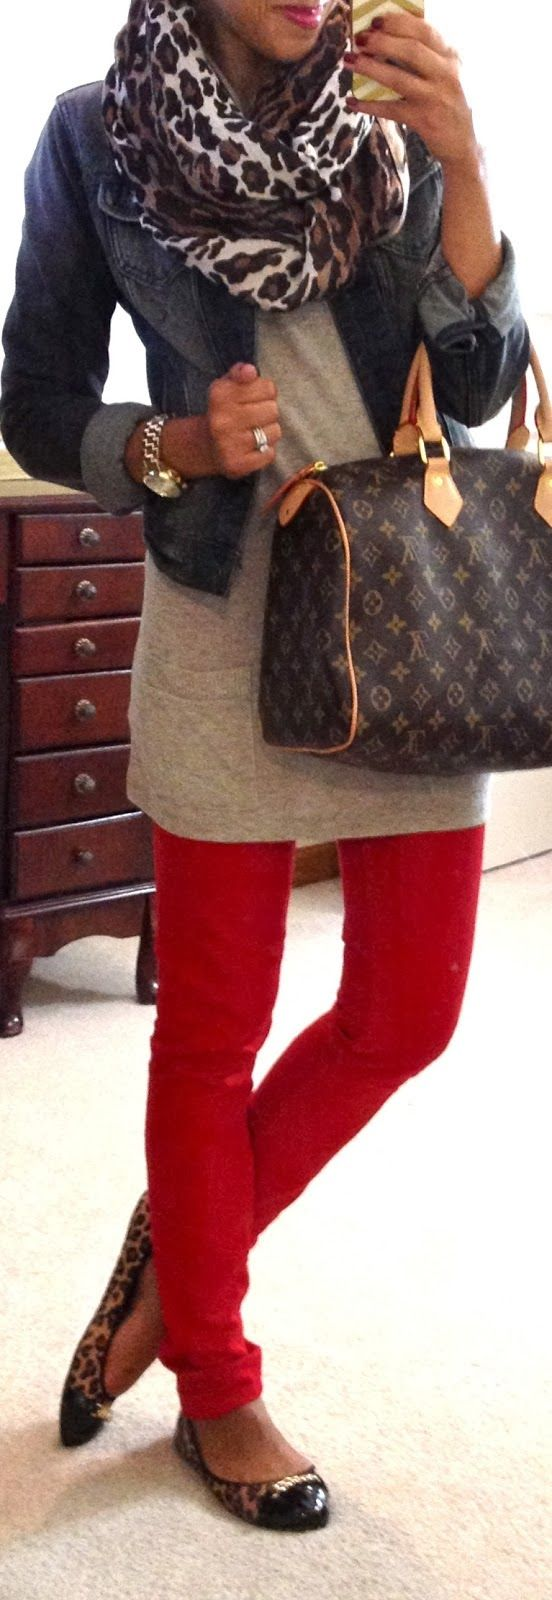 Fall Outfit With Leopard Scarf,Jeans Jacket and Flats Xmas want Louis Vuitton large speedy bag